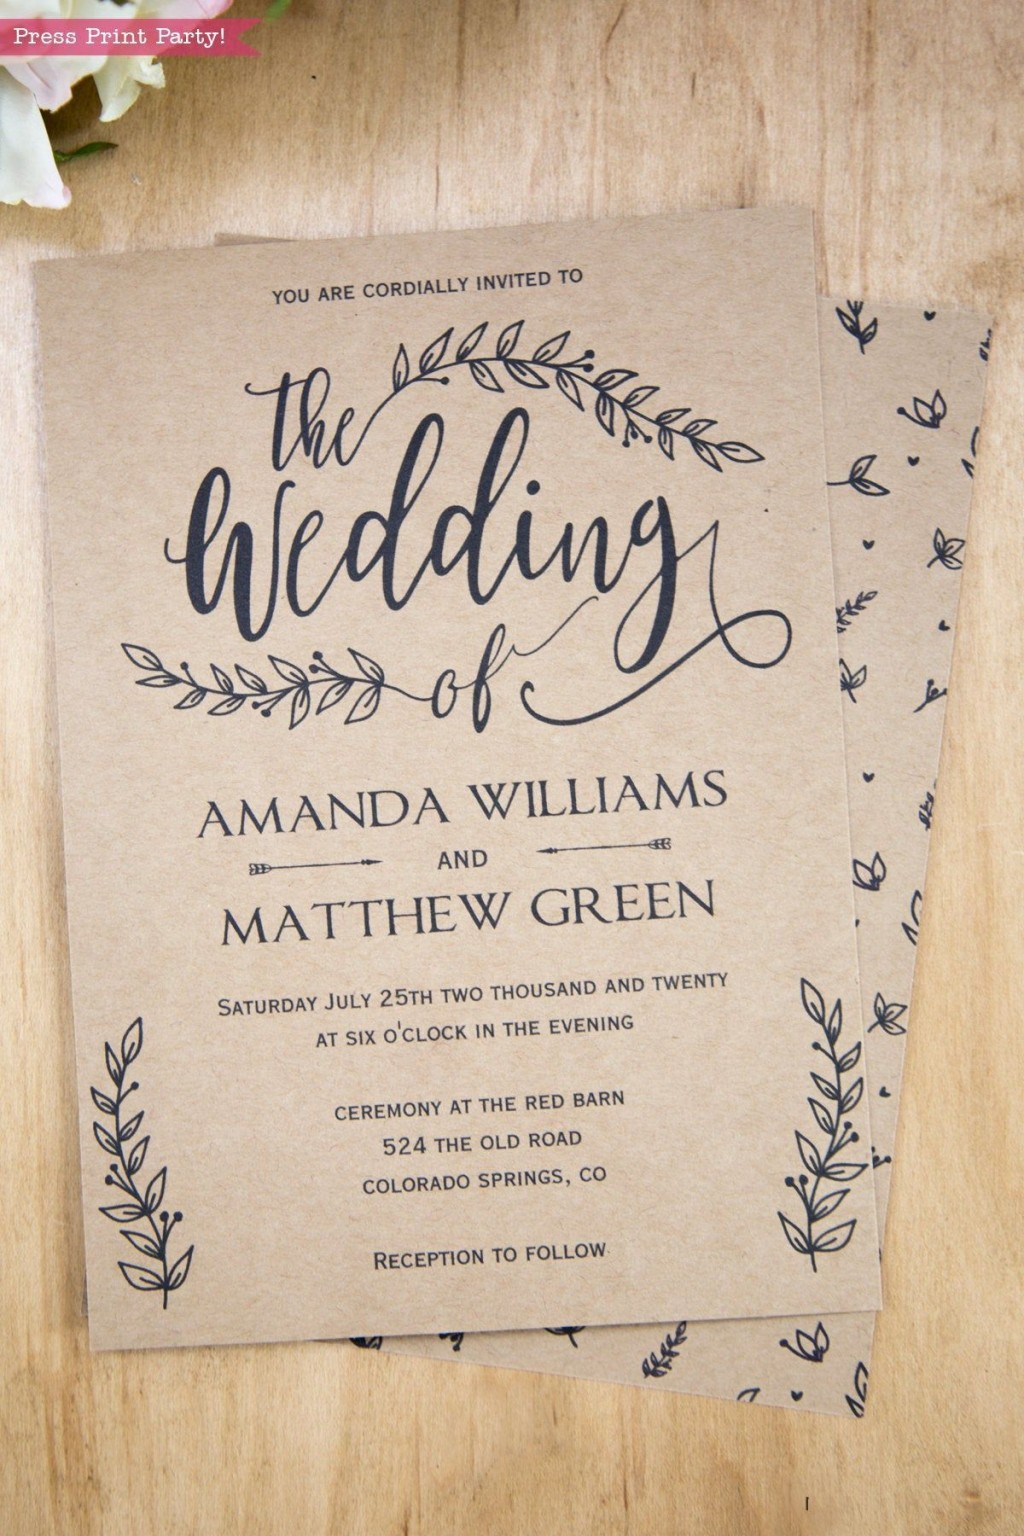 002 Wonderful Rustic Wedding Invitation Template High Def  Templates Free For Word Maker PhotoshopLarge